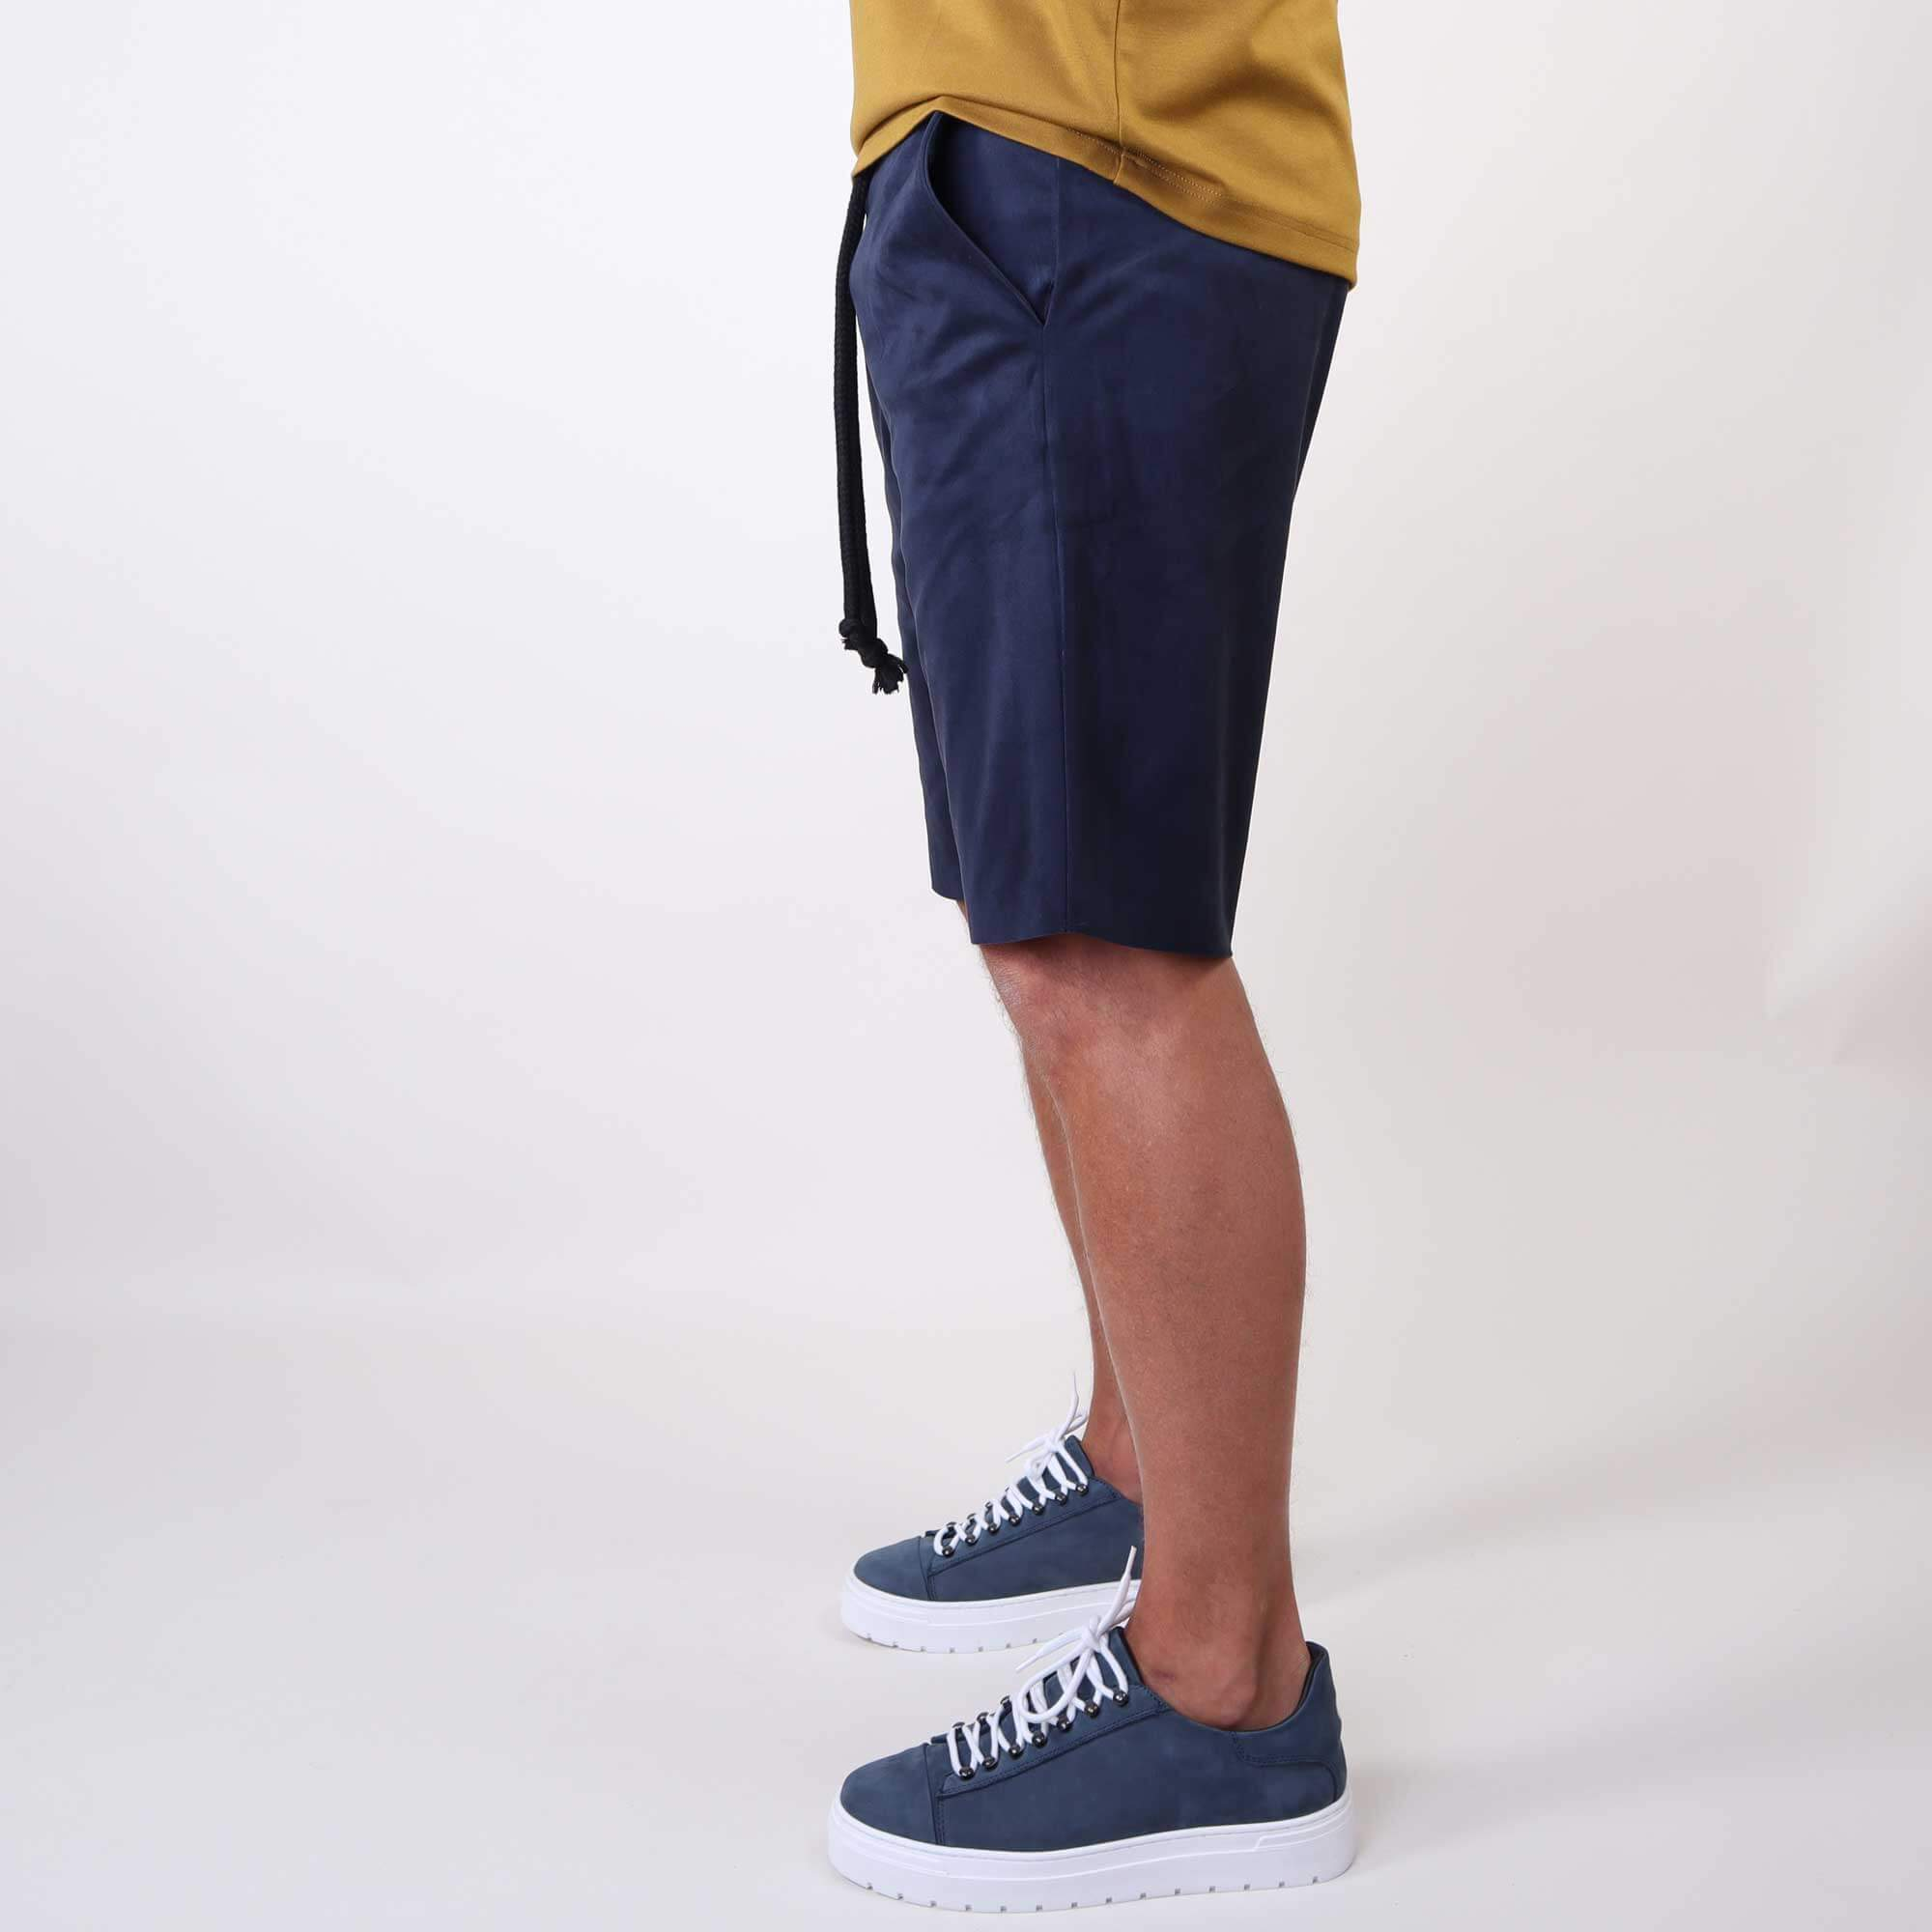 shorts-suede-donkerblauw-1